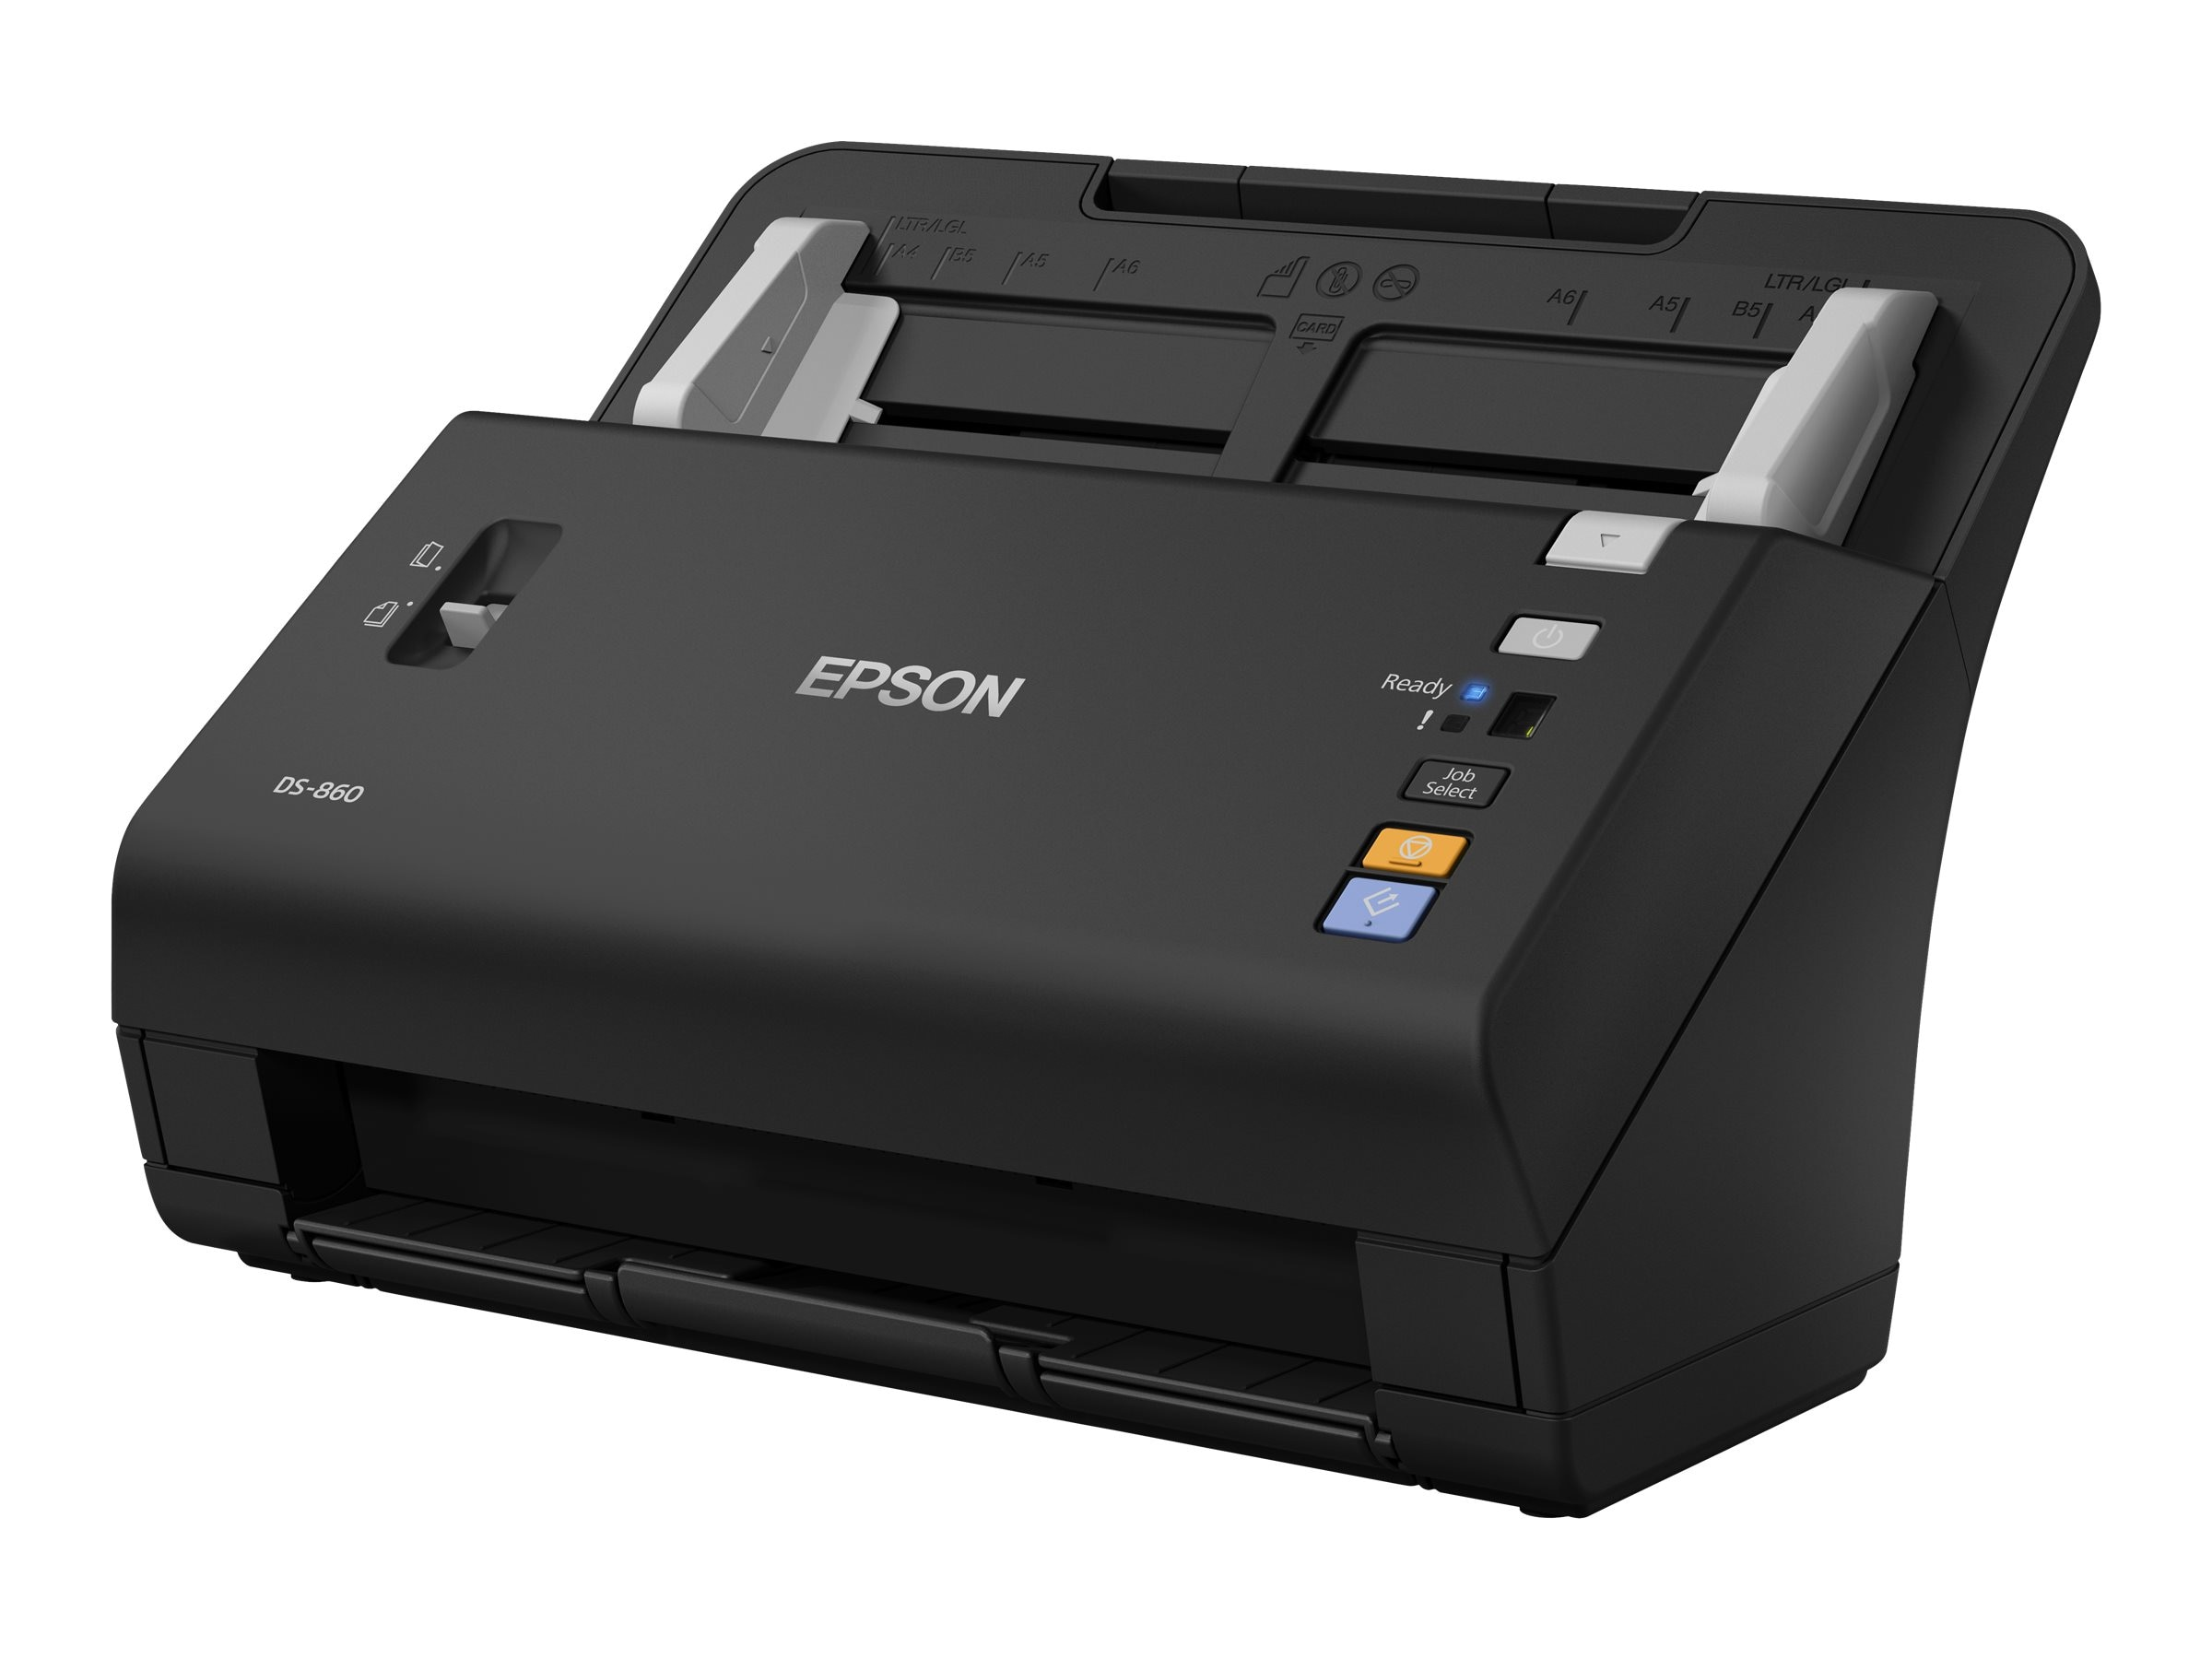 Epson WorkForce DS-860 65ppm 80-page ADF Document Scanner - $1099 less instant rebate of $300.00